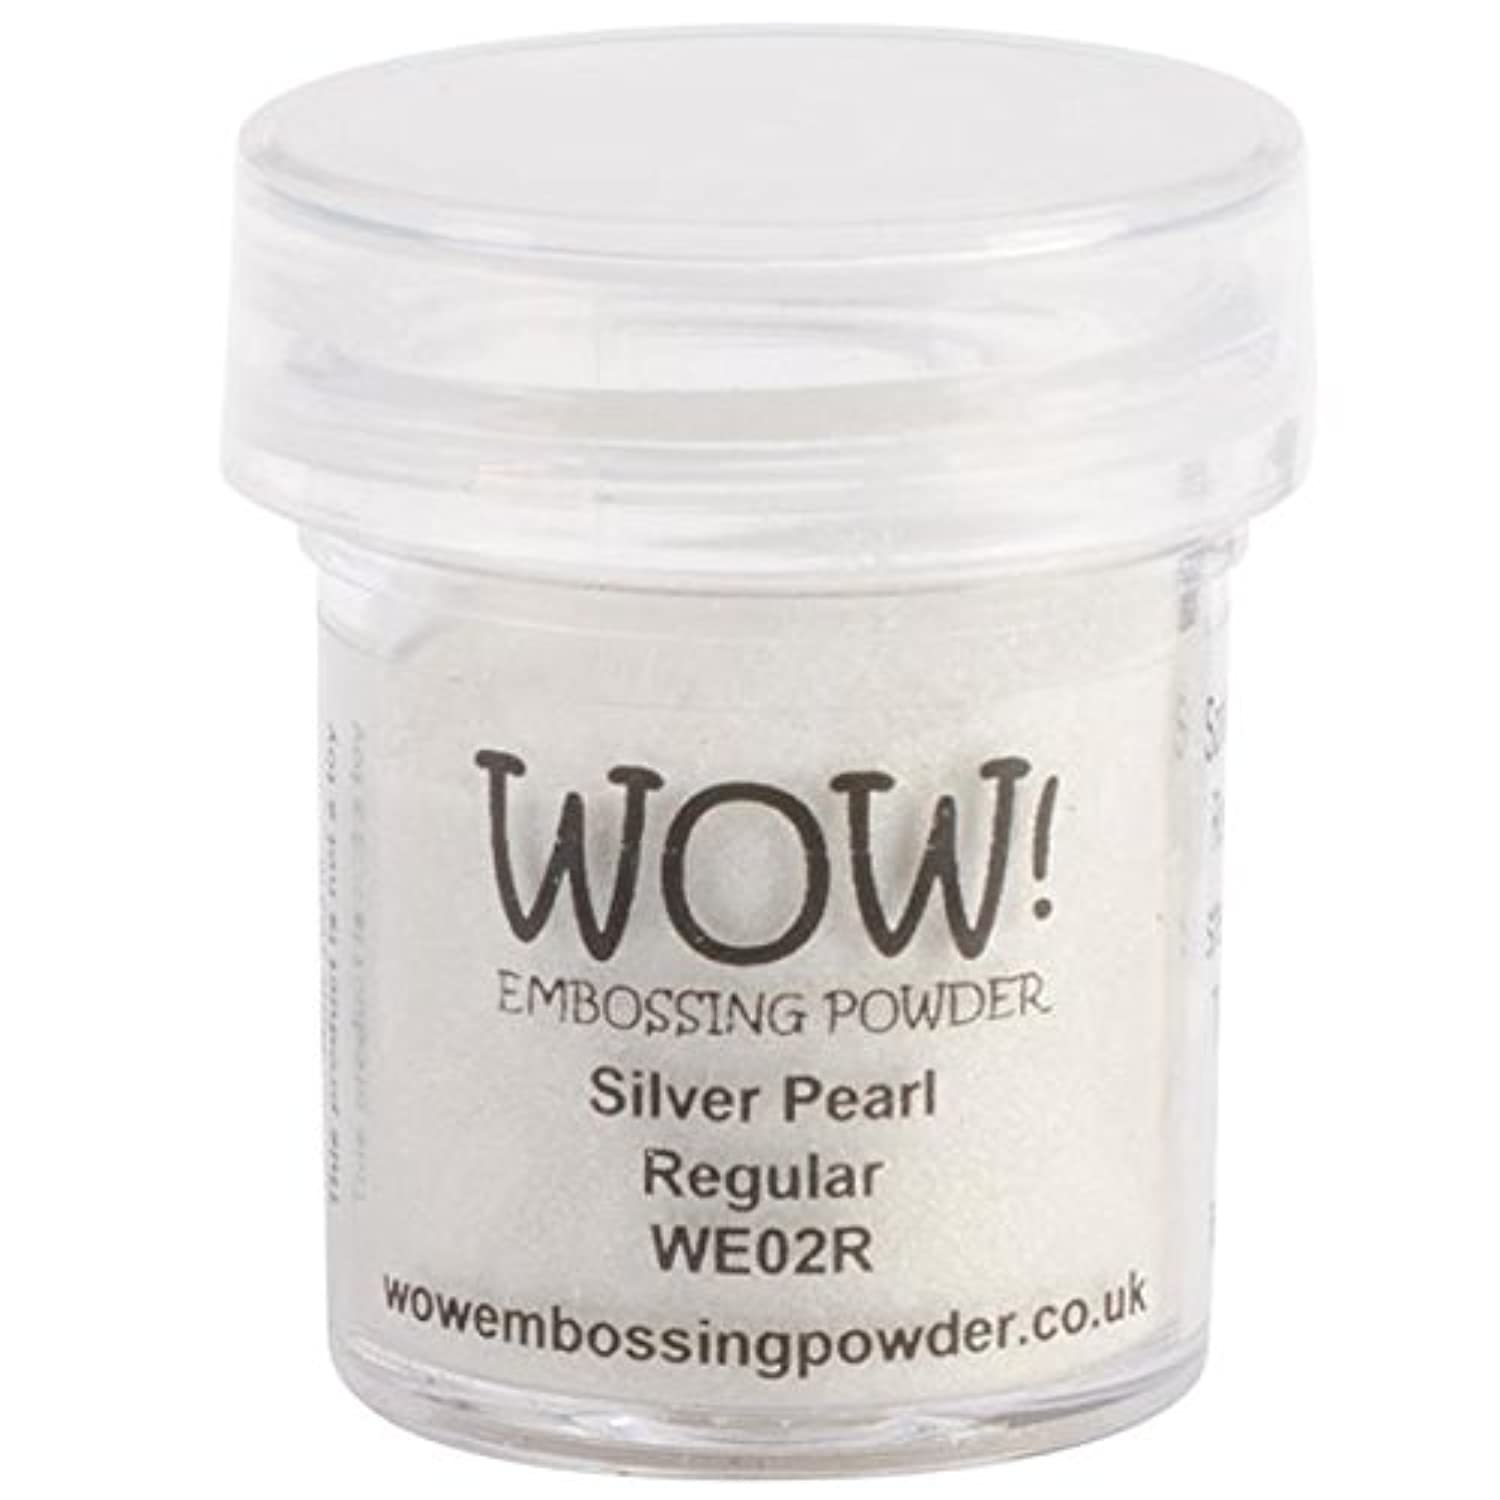 Wow Embossing Powder WOW-WE02R, 15ml, Silver Pearl